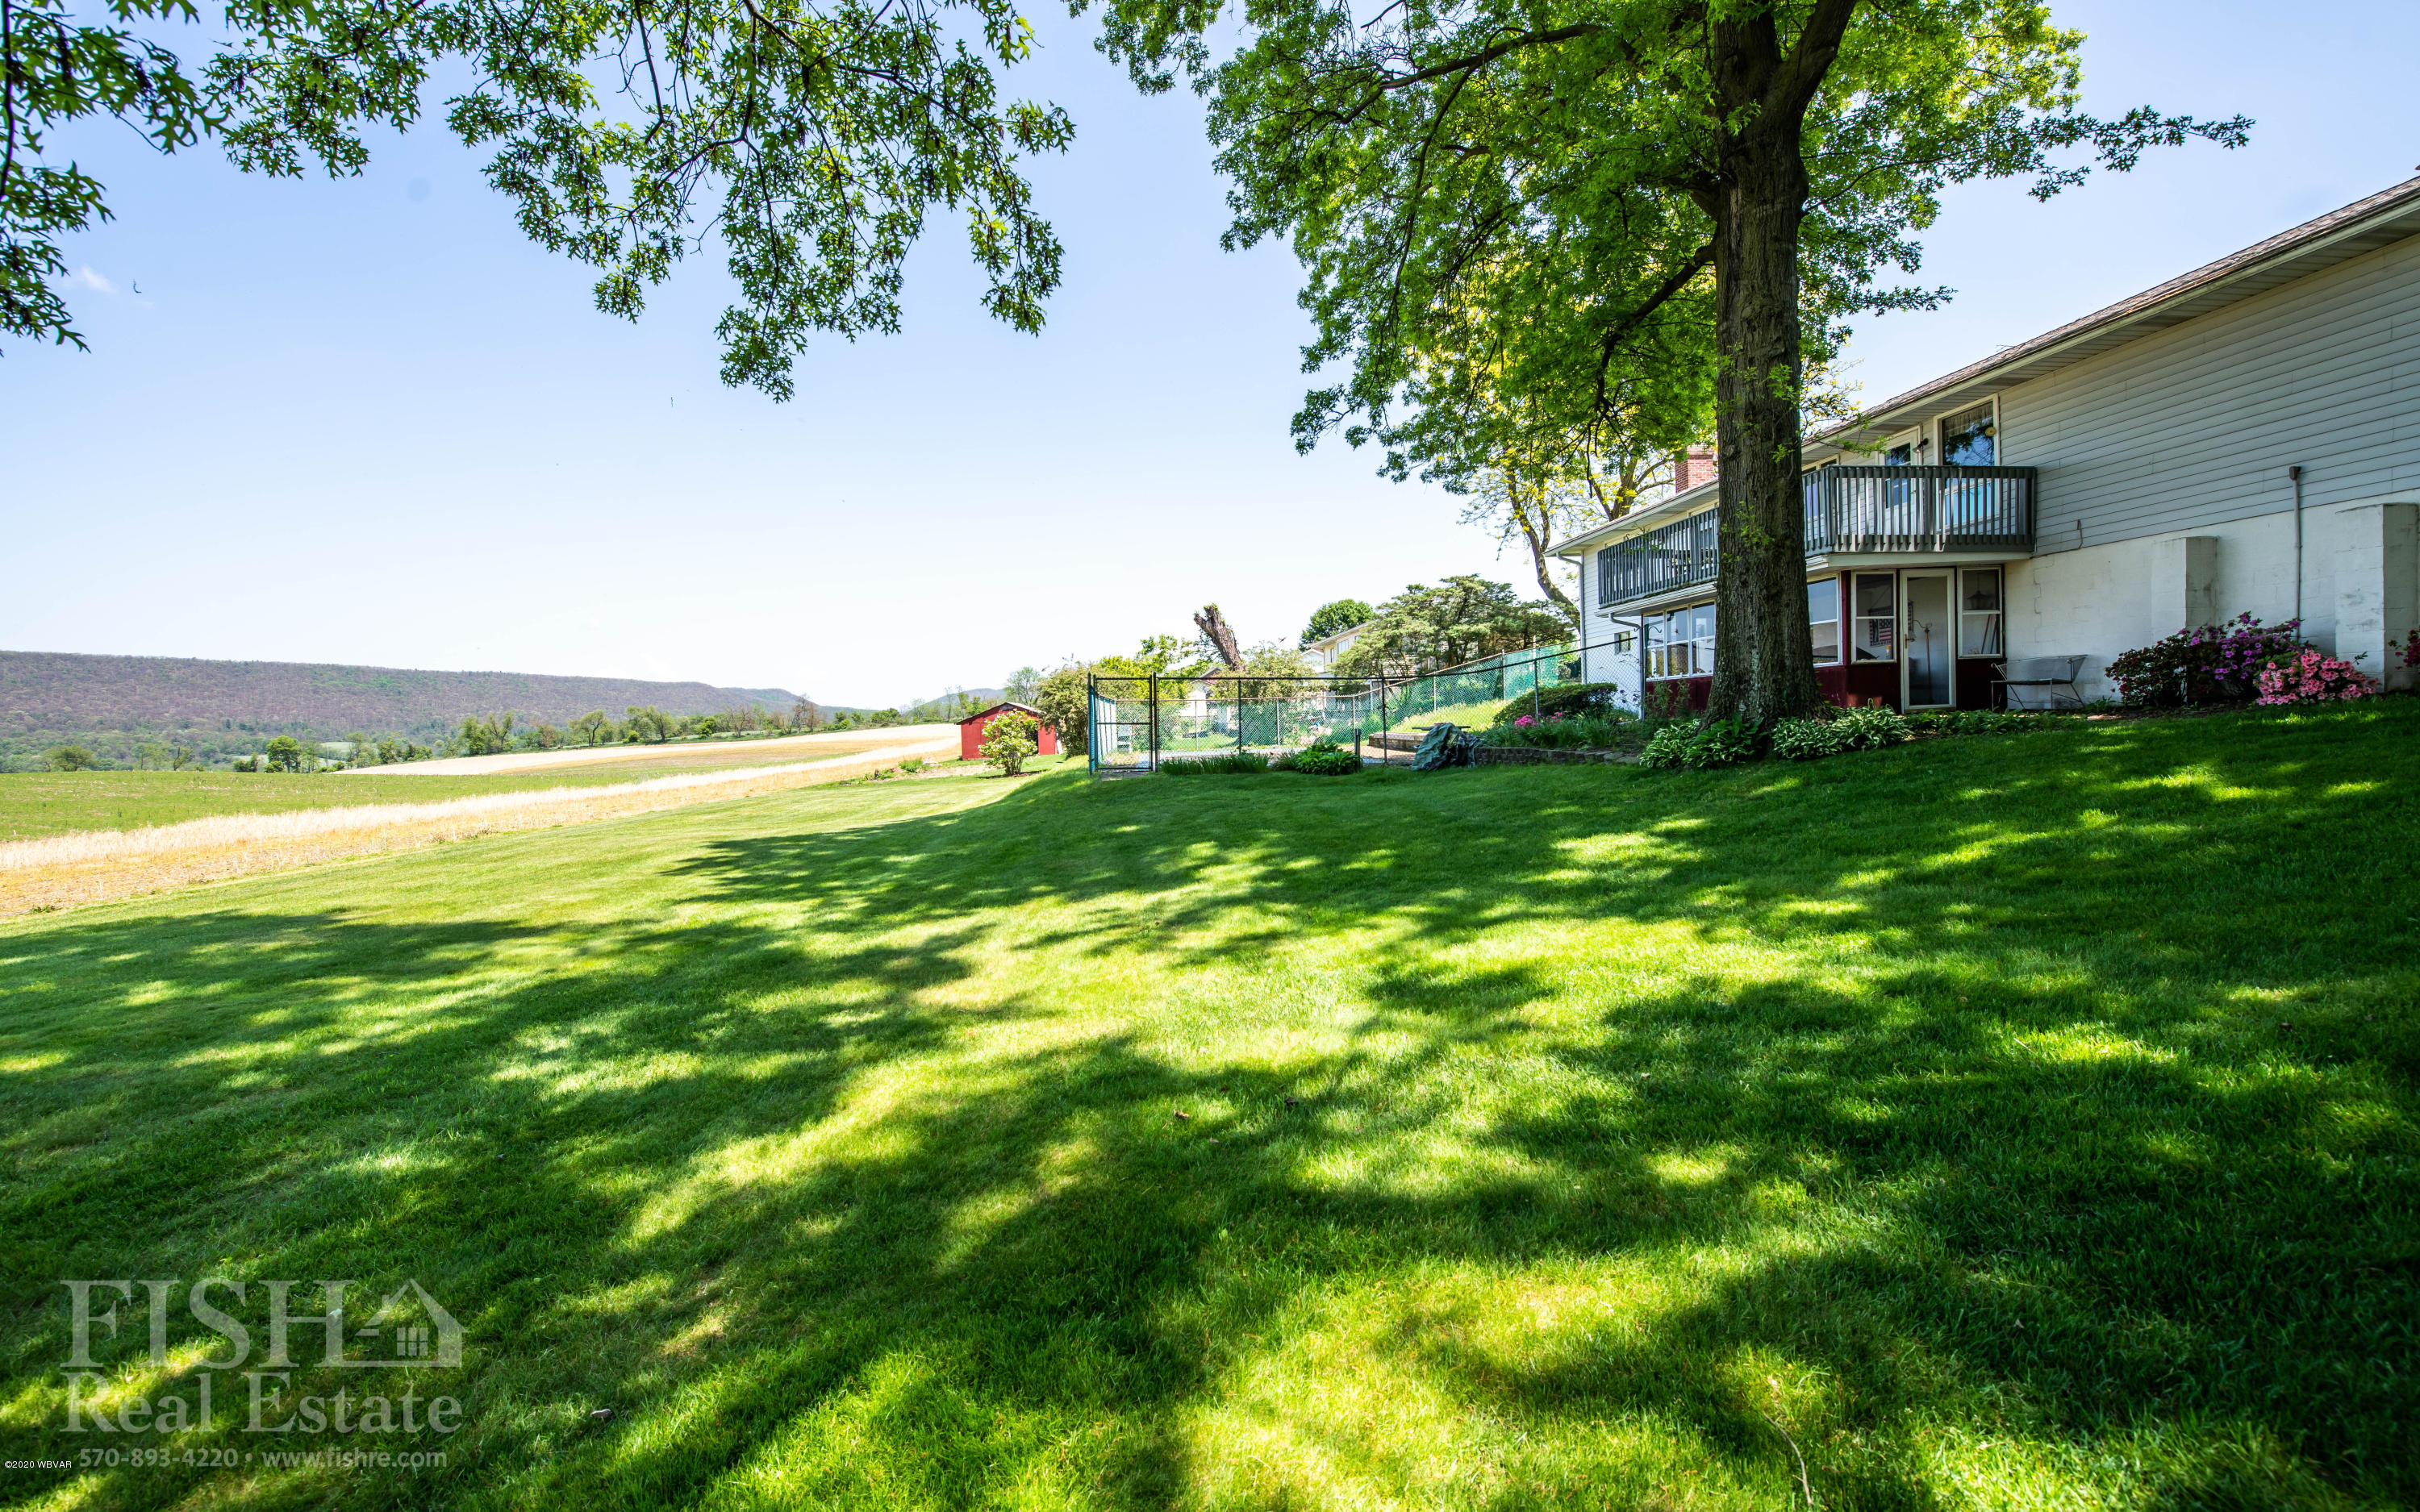 6761 NITTANY VALLEY DRIVE,Mill Hall,PA 17751,4 Bedrooms Bedrooms,2 BathroomsBathrooms,Residential,NITTANY VALLEY,WB-90178